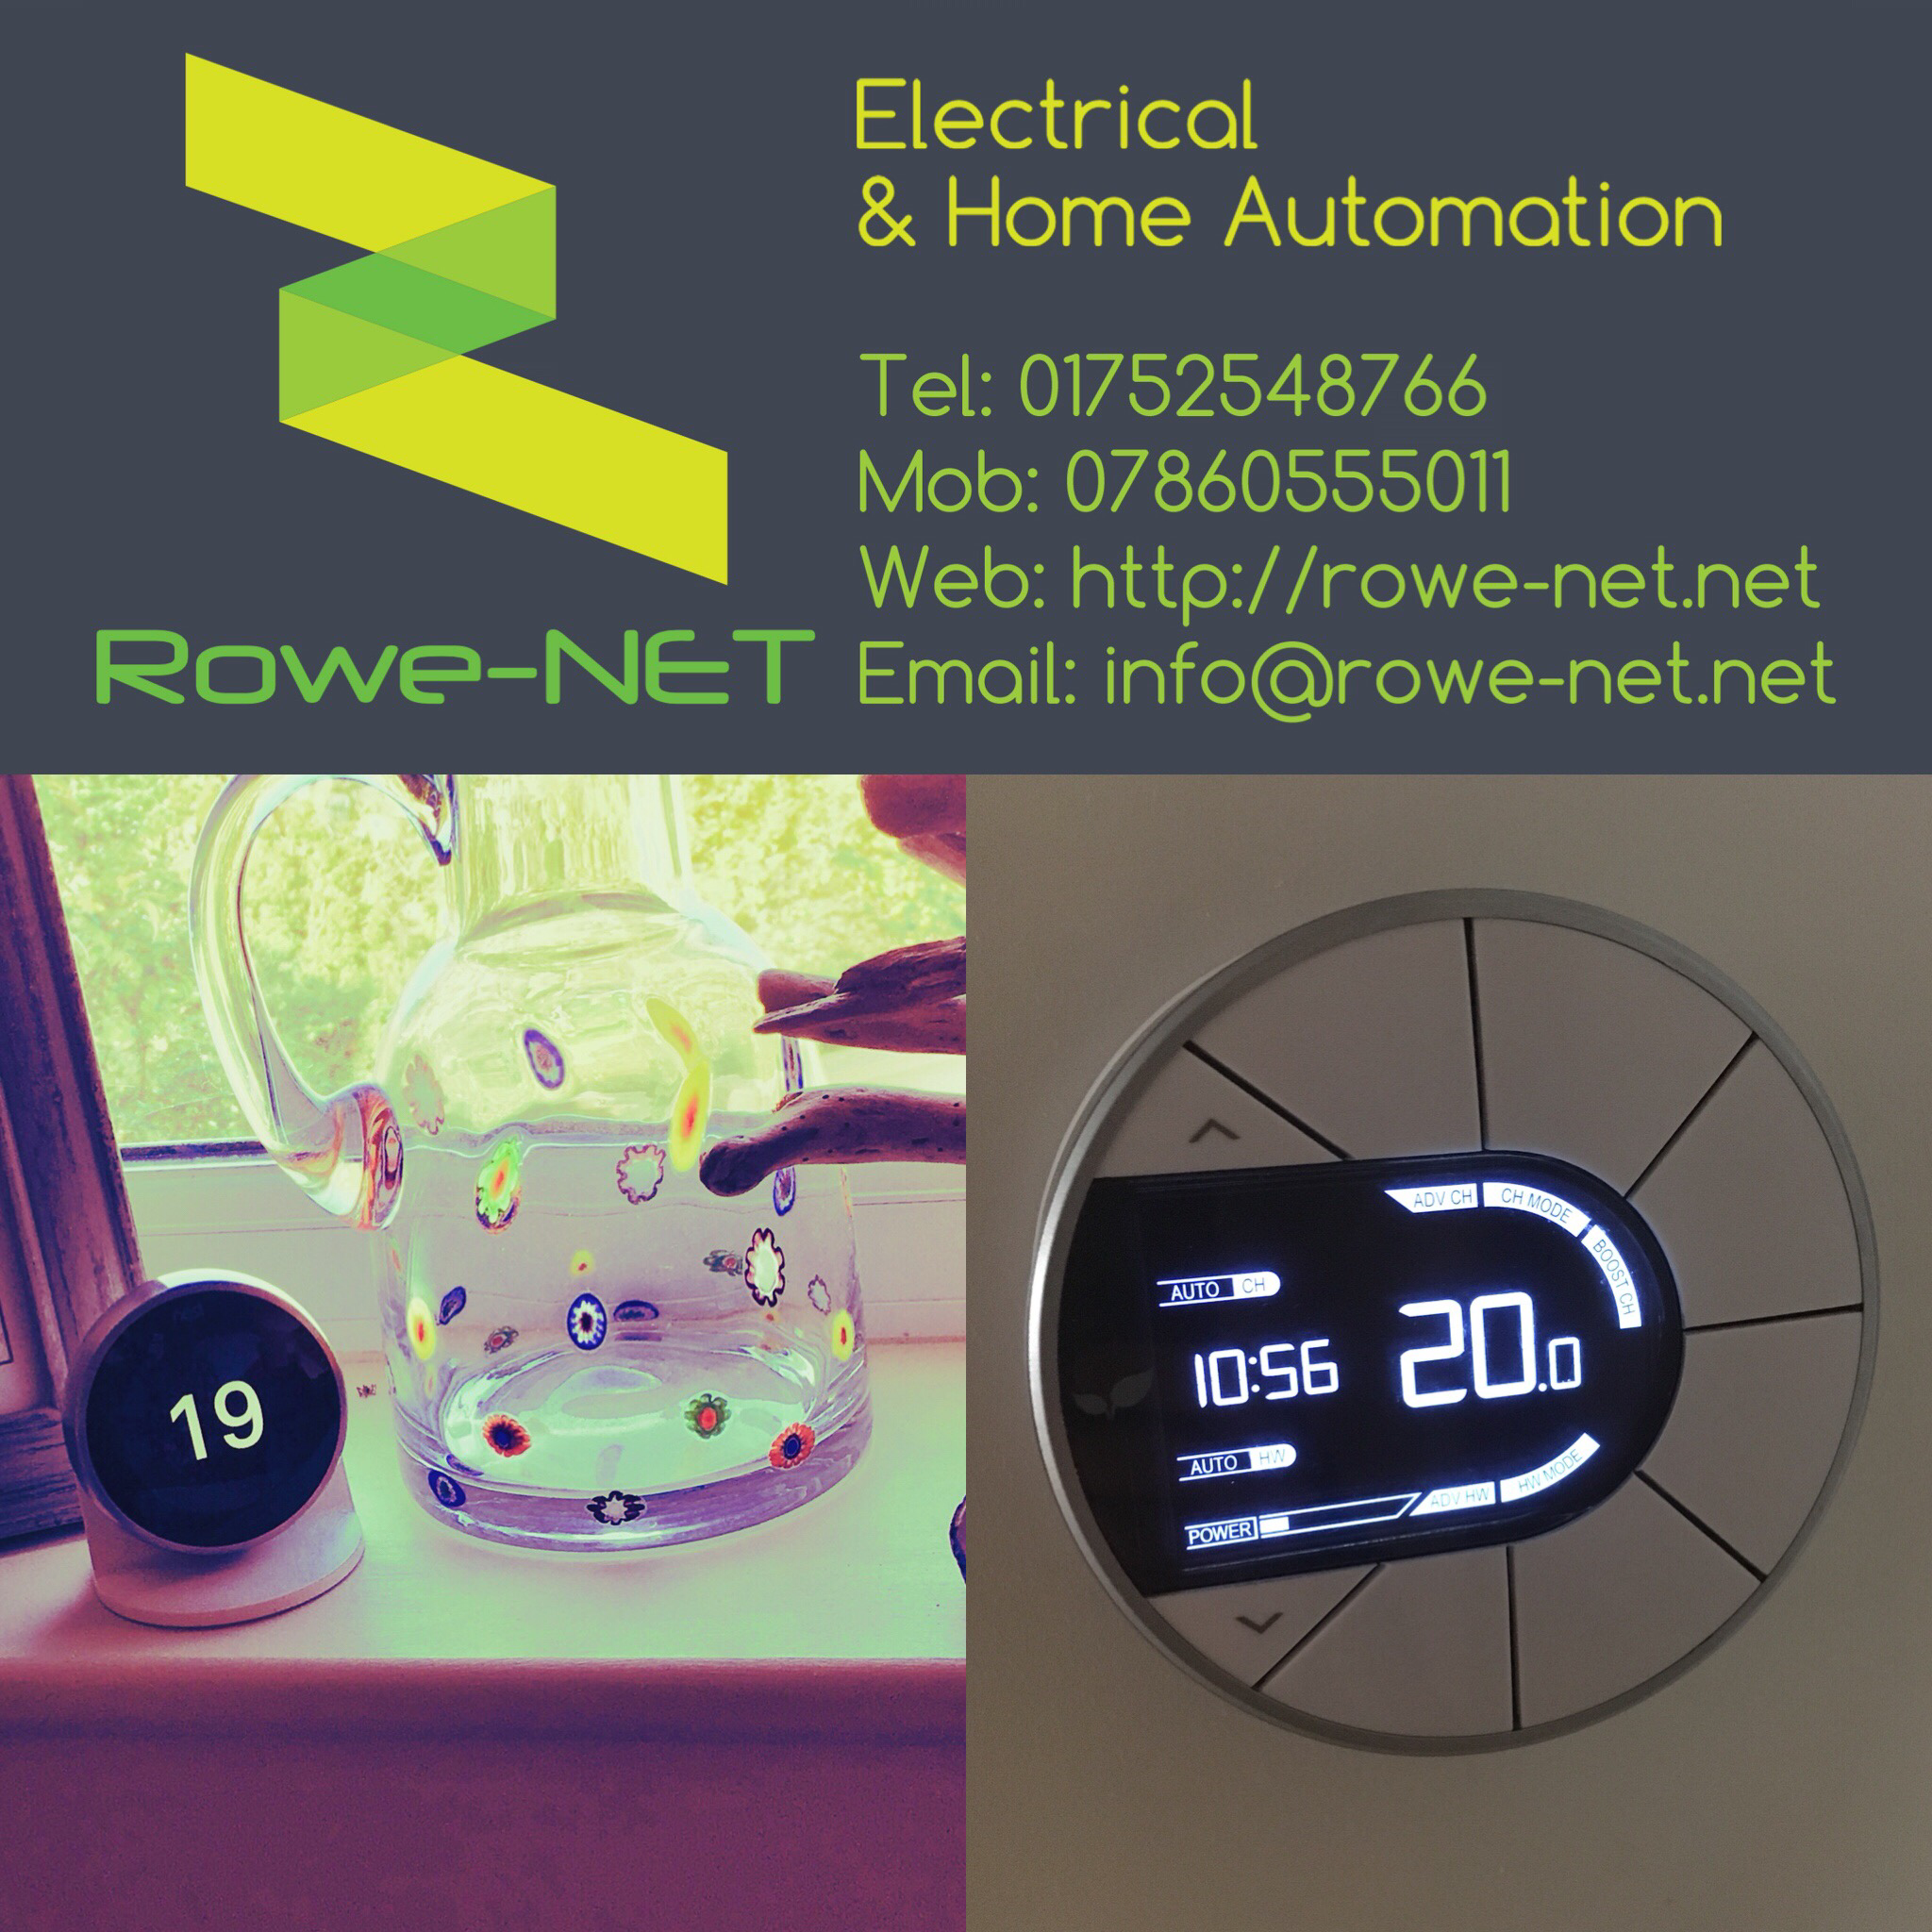 rowe net smart heating controls iot smarthome nest rated